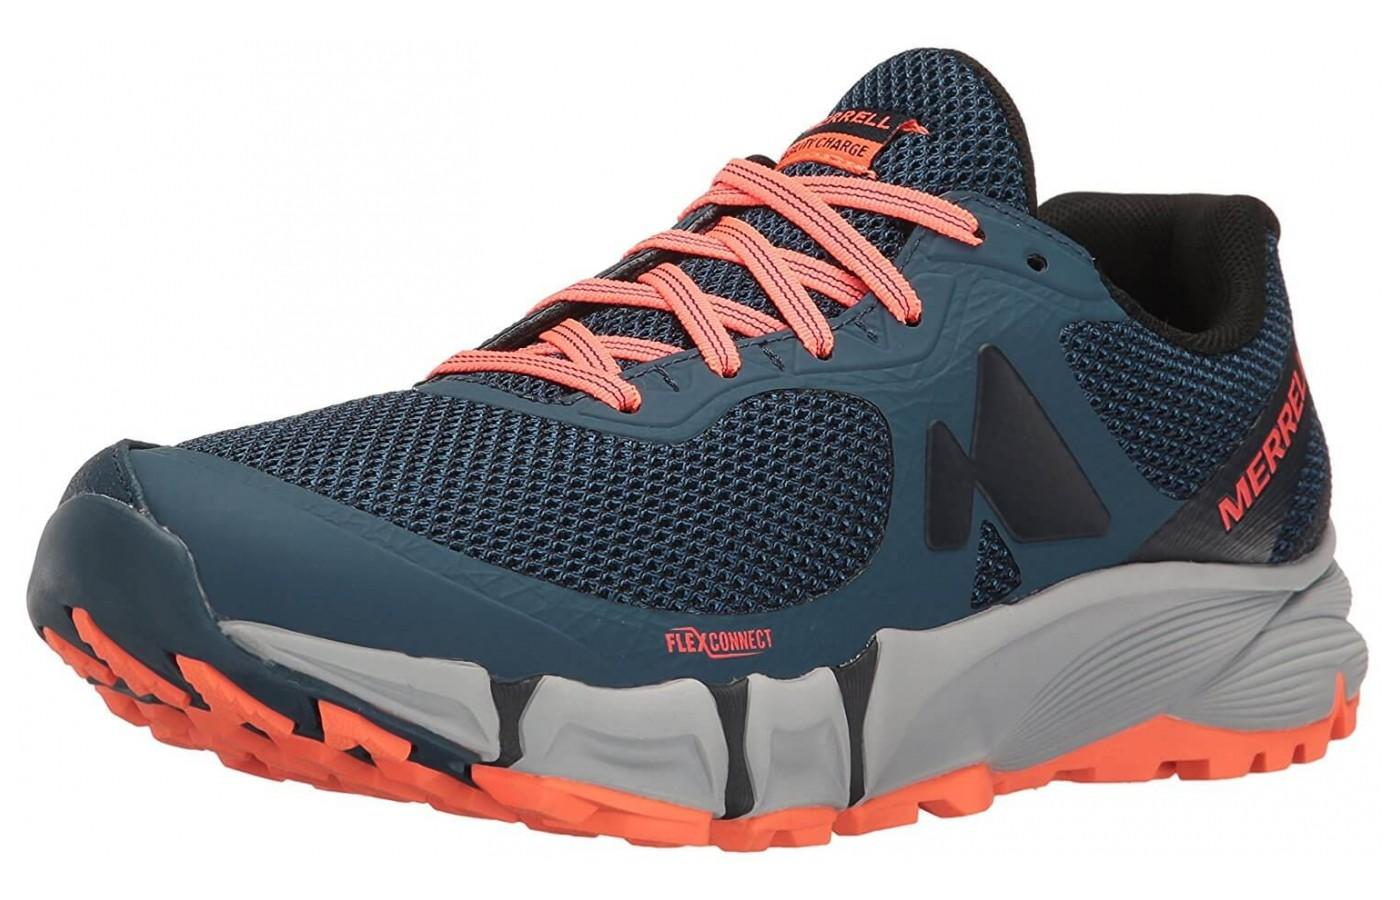 Women's version of the Merrell Agility Charge Flex